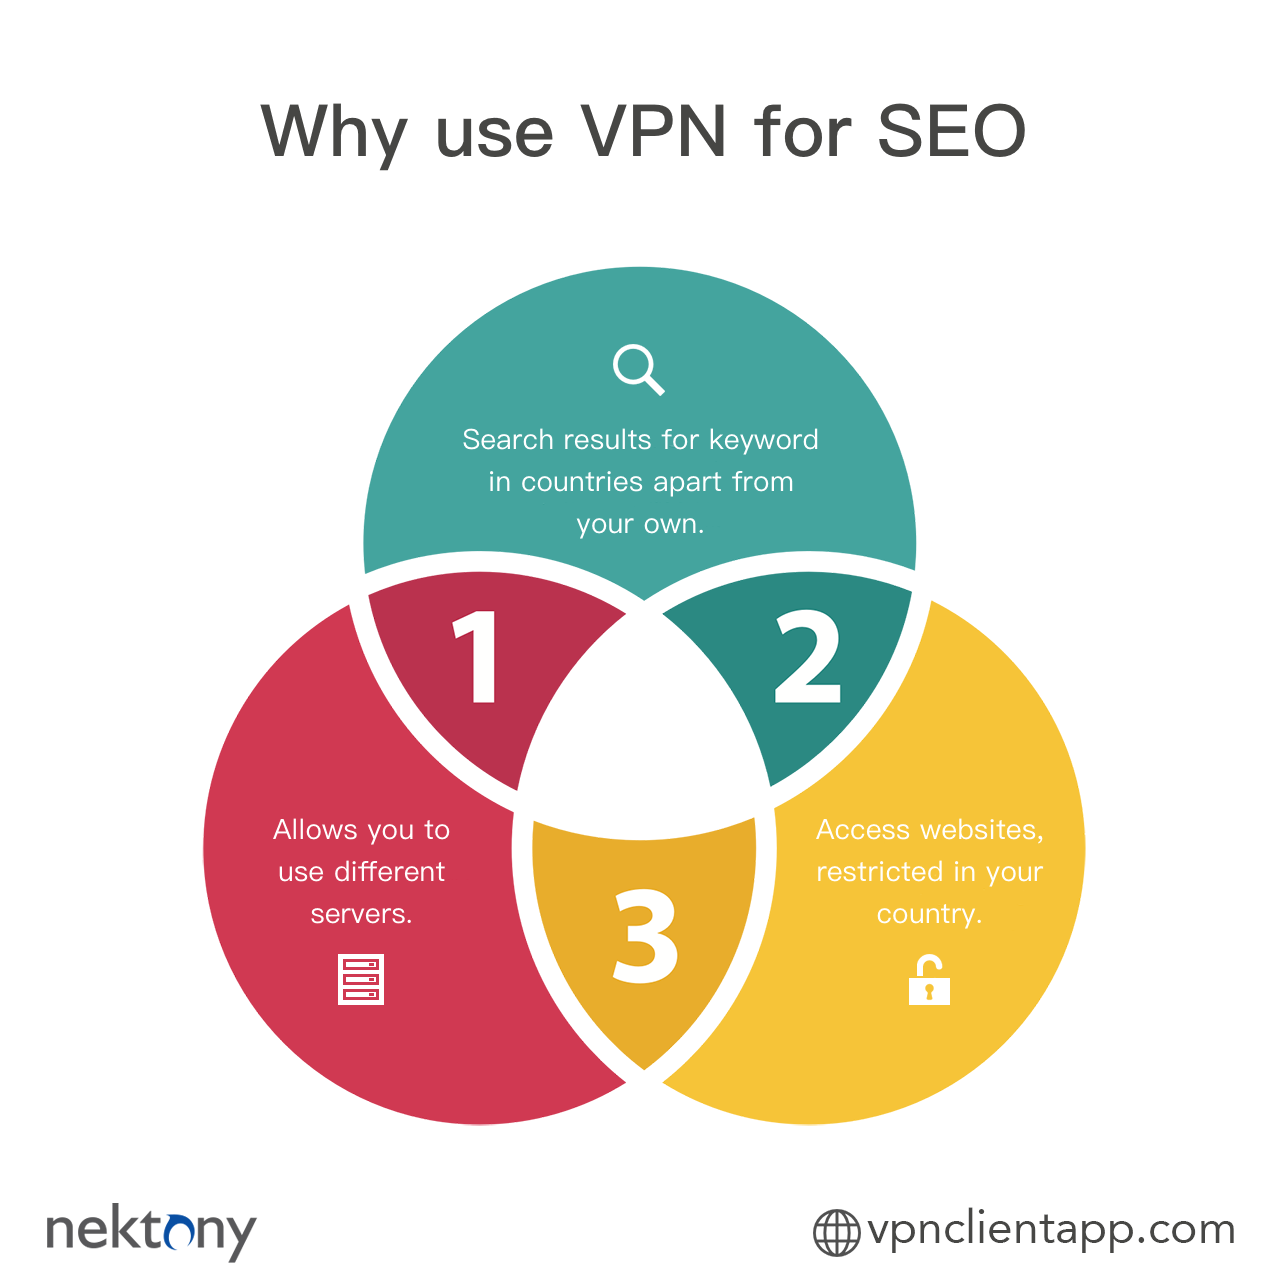 8bb75c83f5adf36a001da7affbbf7ded - Does A Vpn Hide What You Search